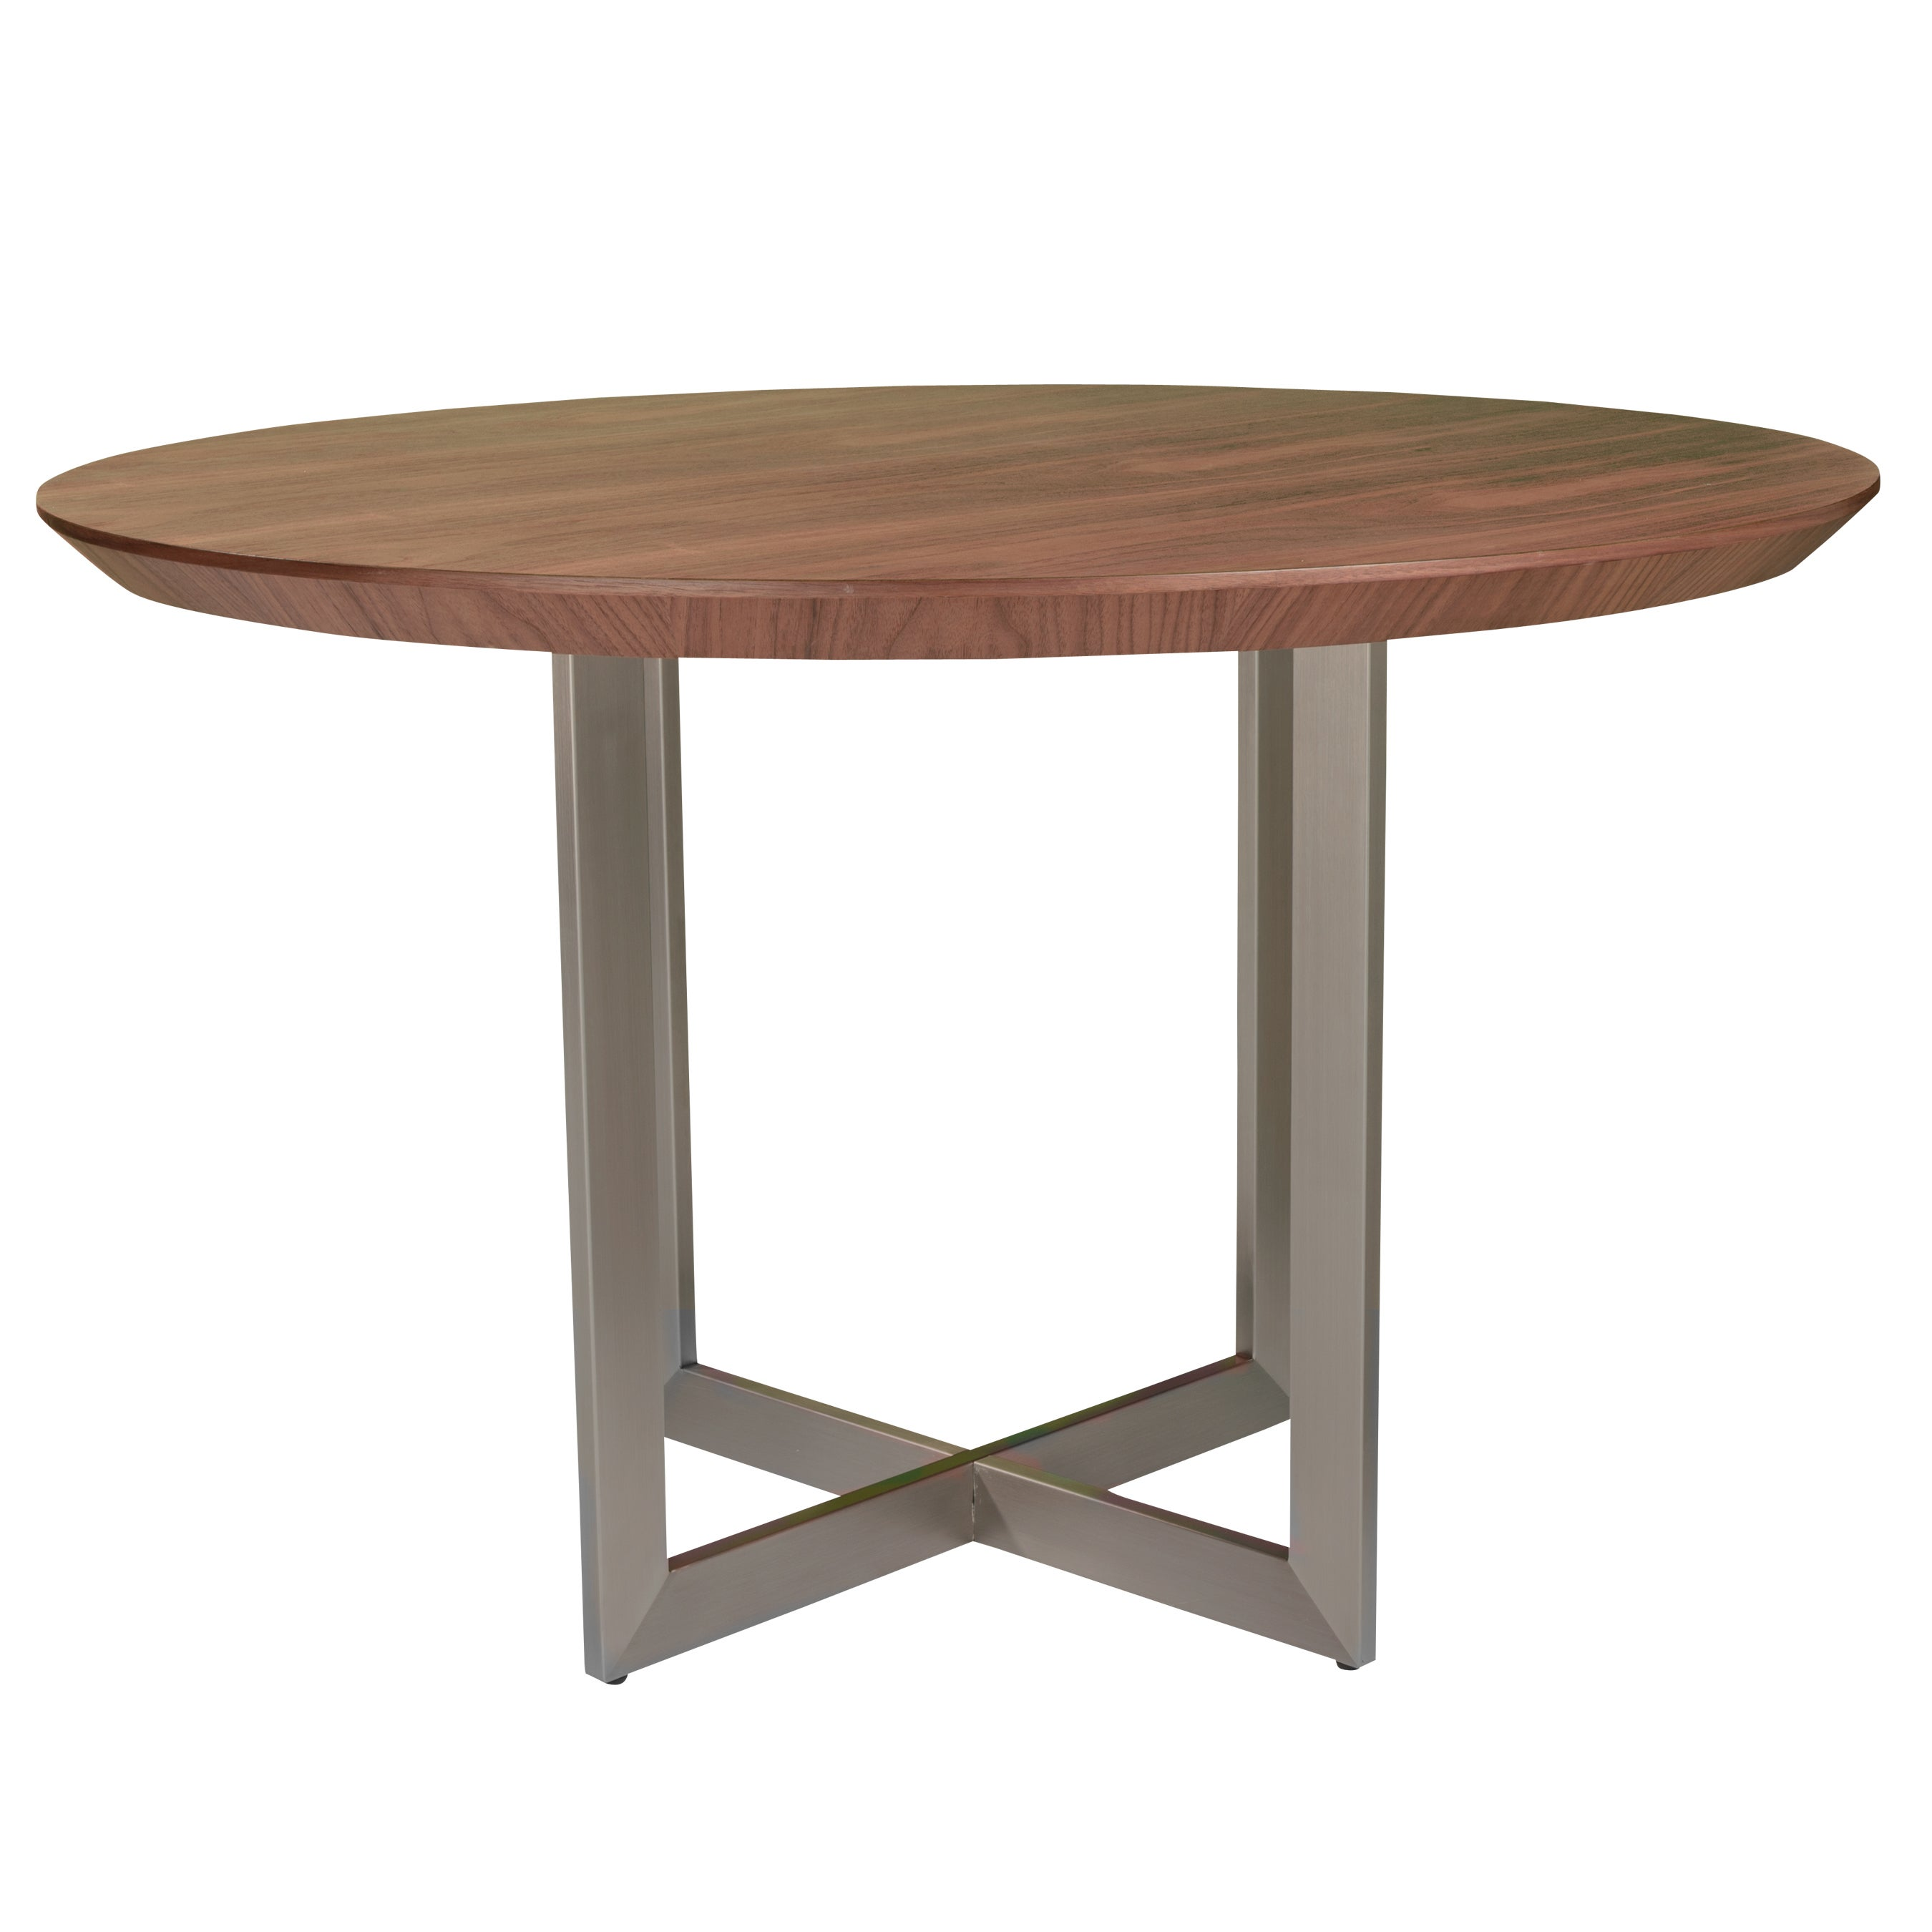 Tosca 54 Round Dining Table In American Walnut With Brushed